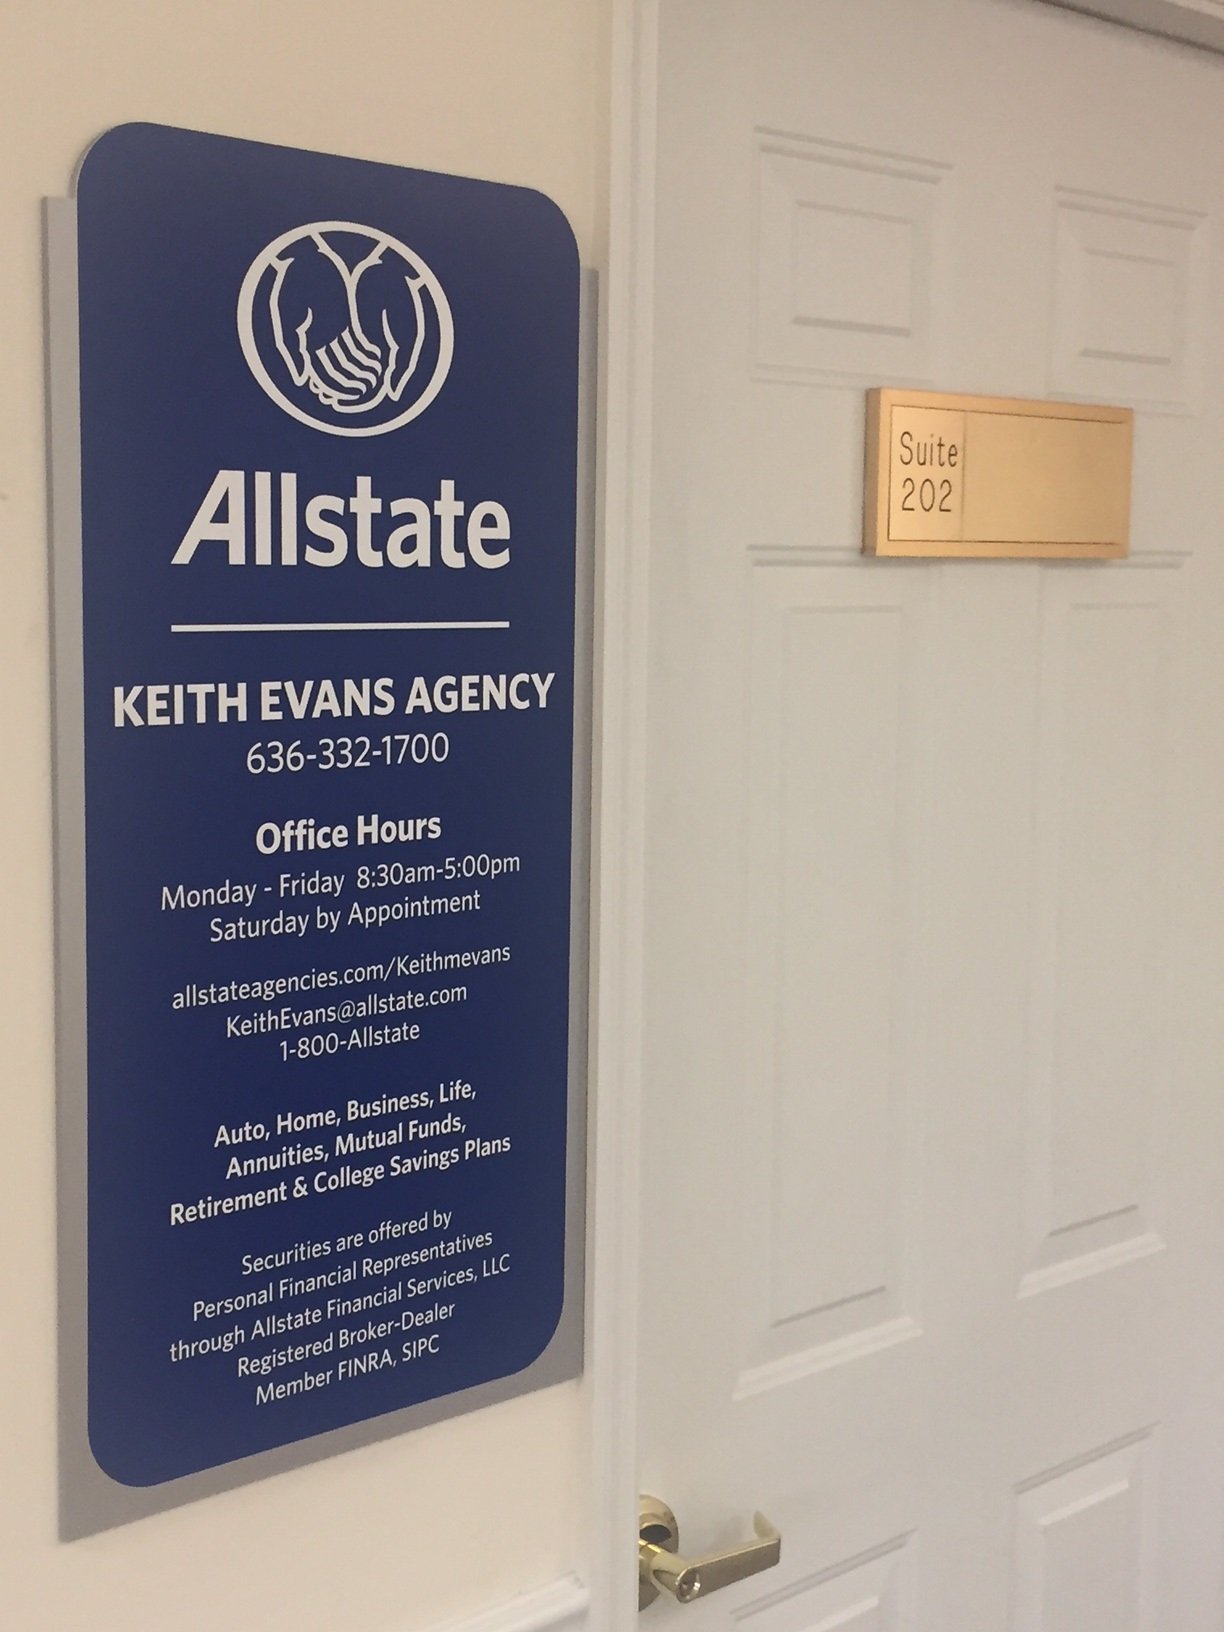 Keith Evans: Allstate Insurance image 2